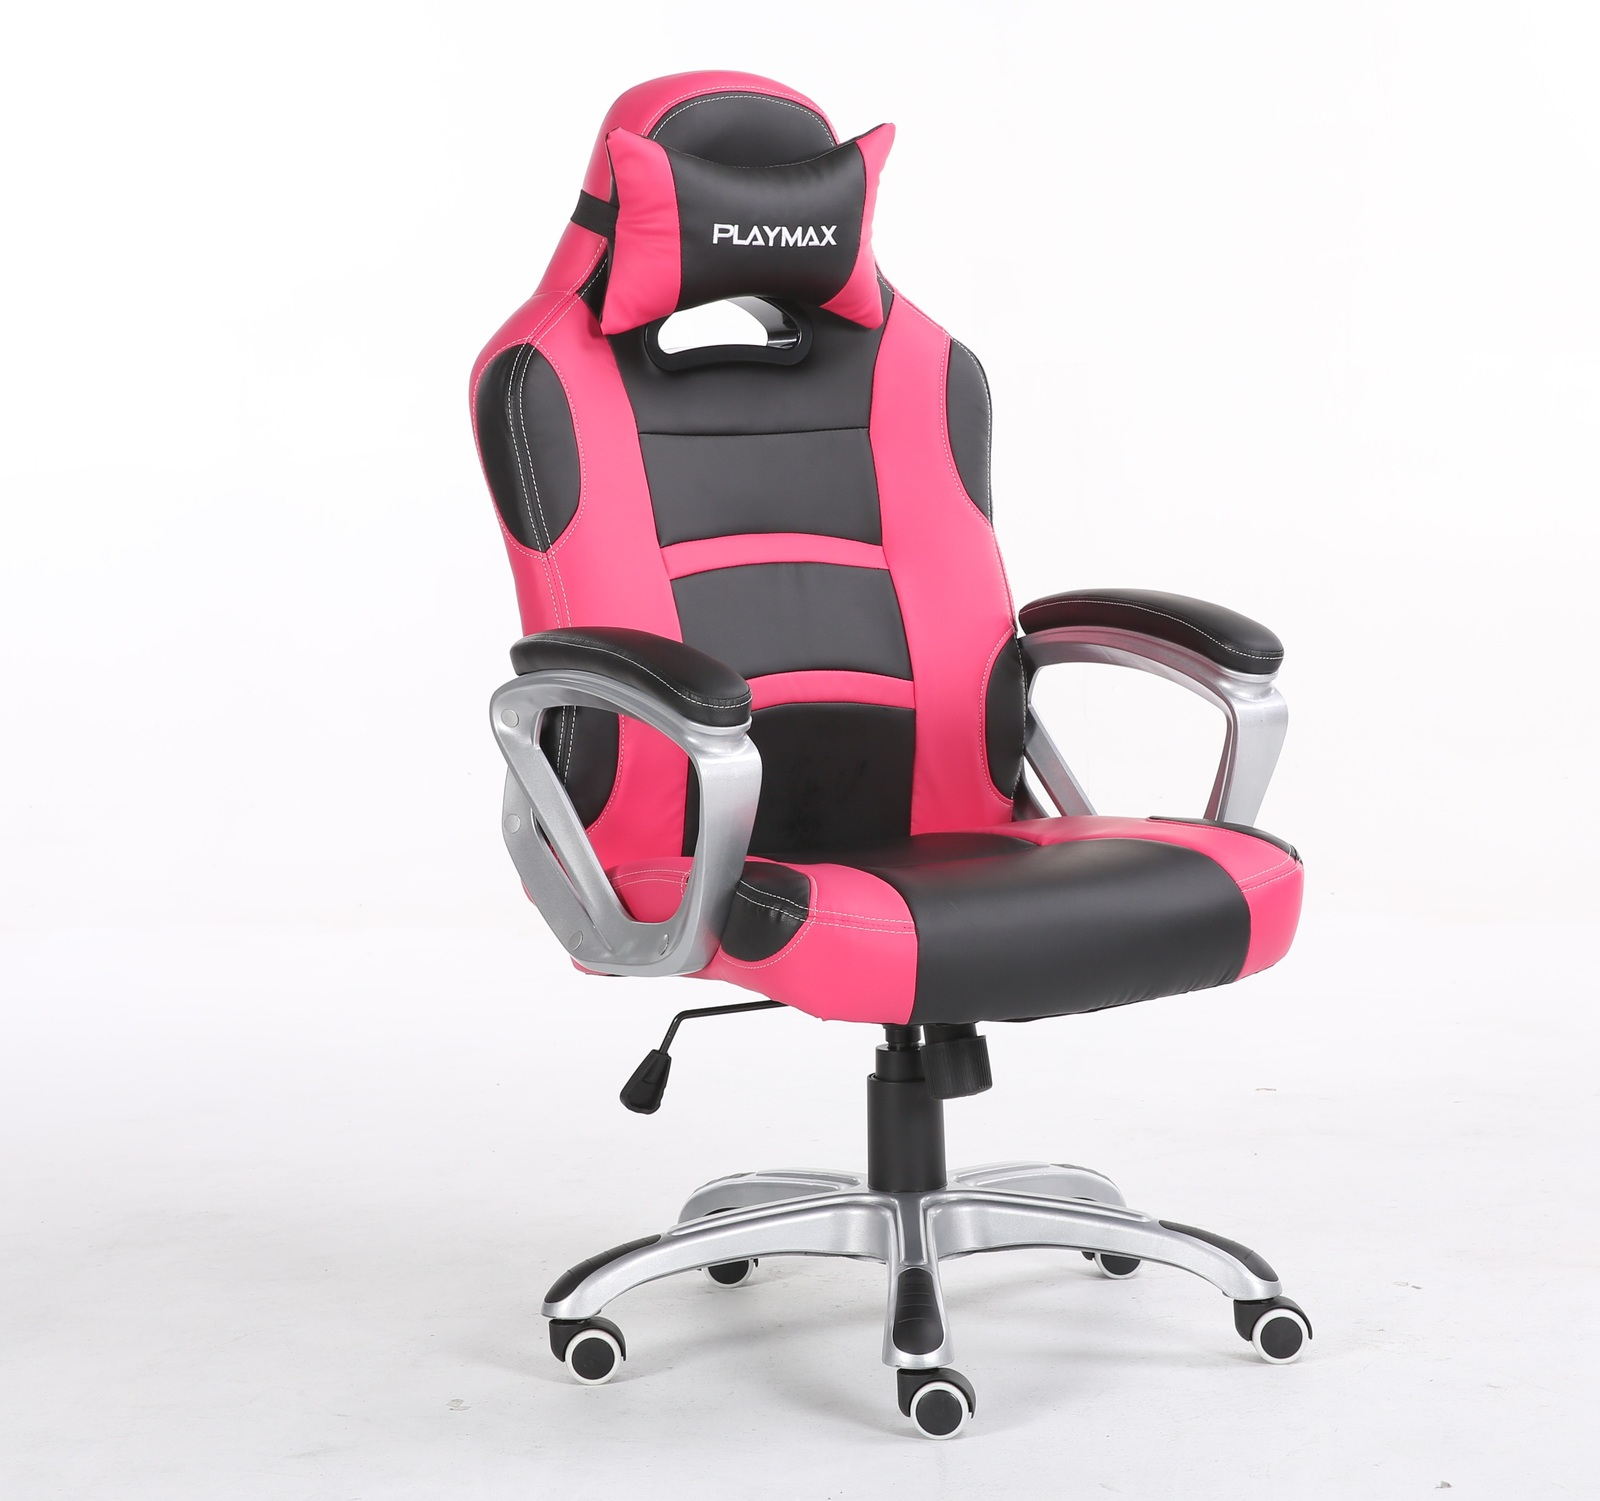 Surprising Playmax Gaming Chair Pink And Black Machost Co Dining Chair Design Ideas Machostcouk